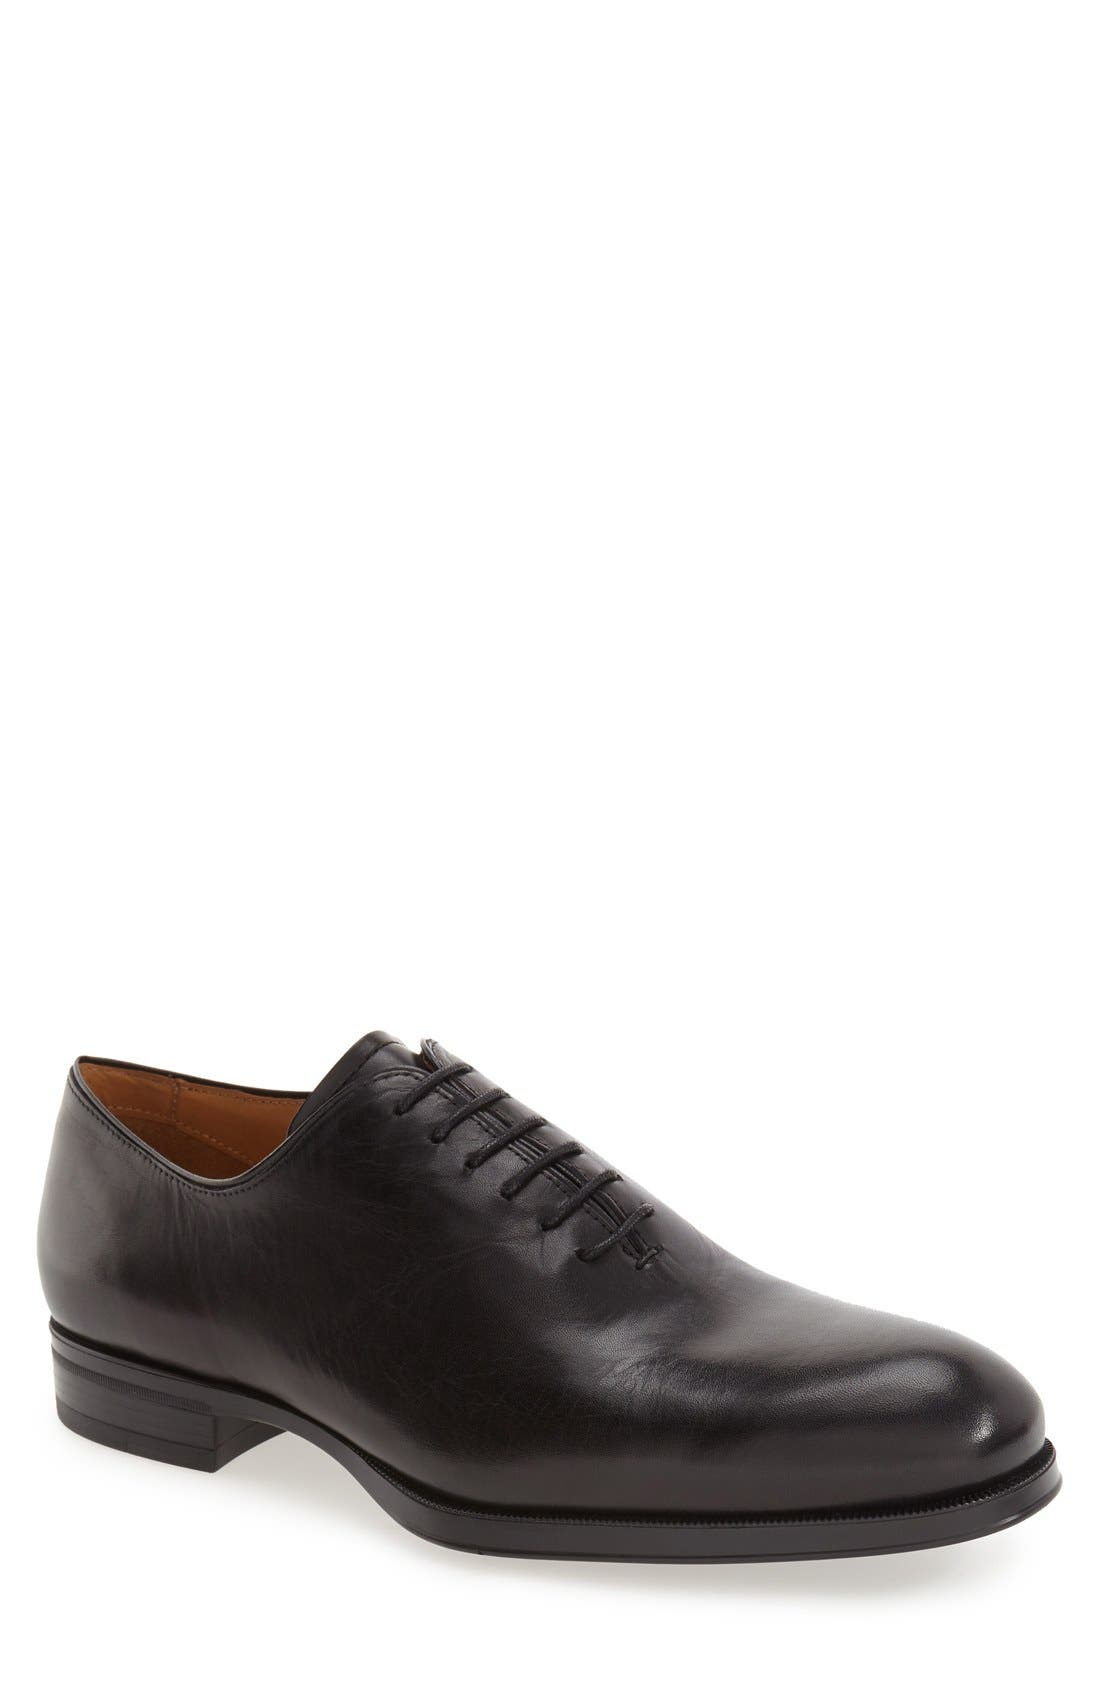 Main Image - Vince Camuto 'Tarby' Wholecut Oxford ...